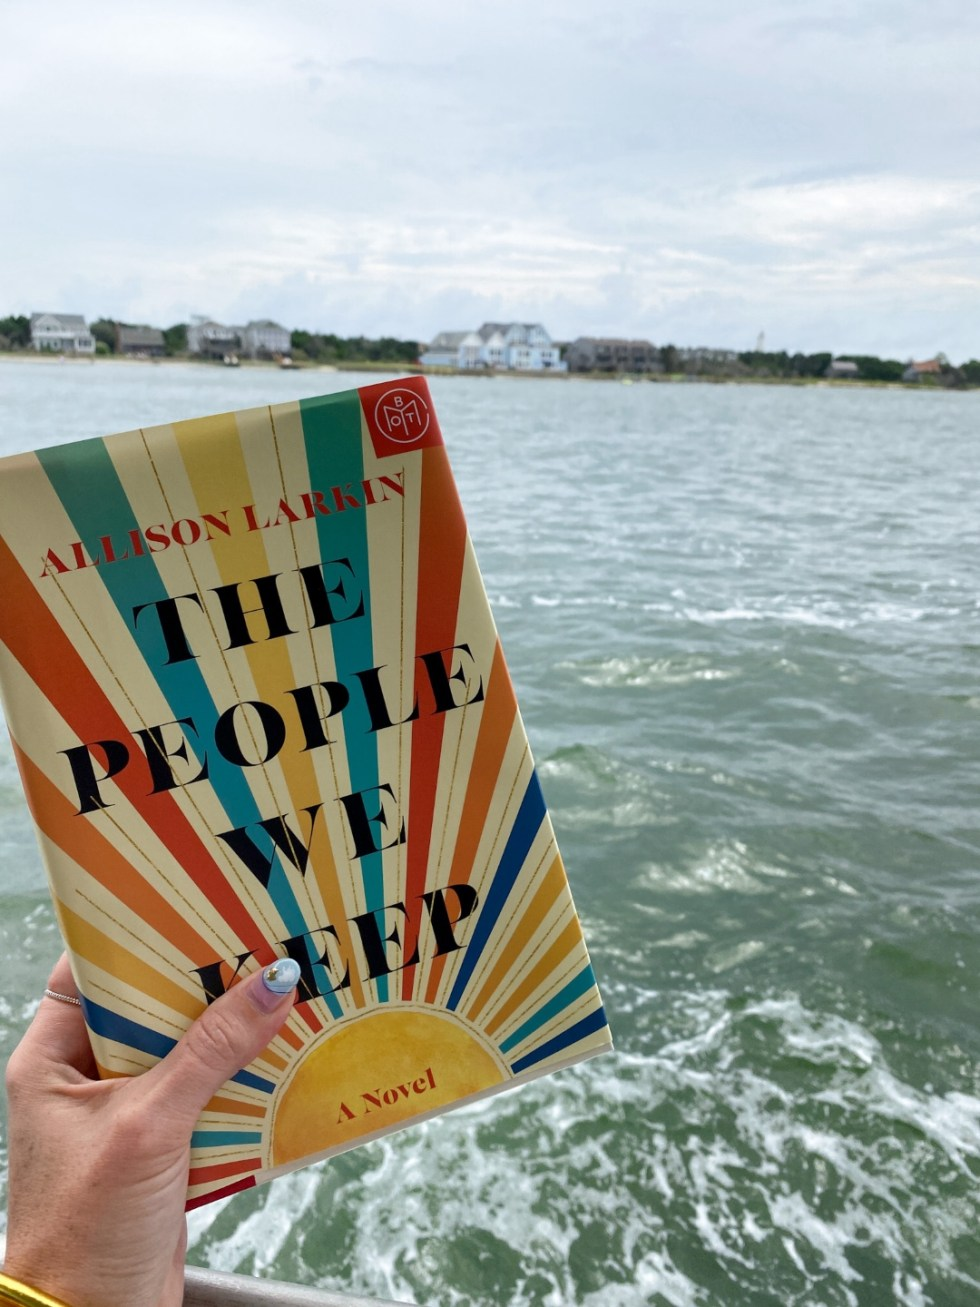 2021 Reading List: What I've Read So Far - I'm Fixin' To - @imfixintoblog | 2021 Reading List by popular NC lifestyle blog, I'm Fixin' To: image of The People We Keep.